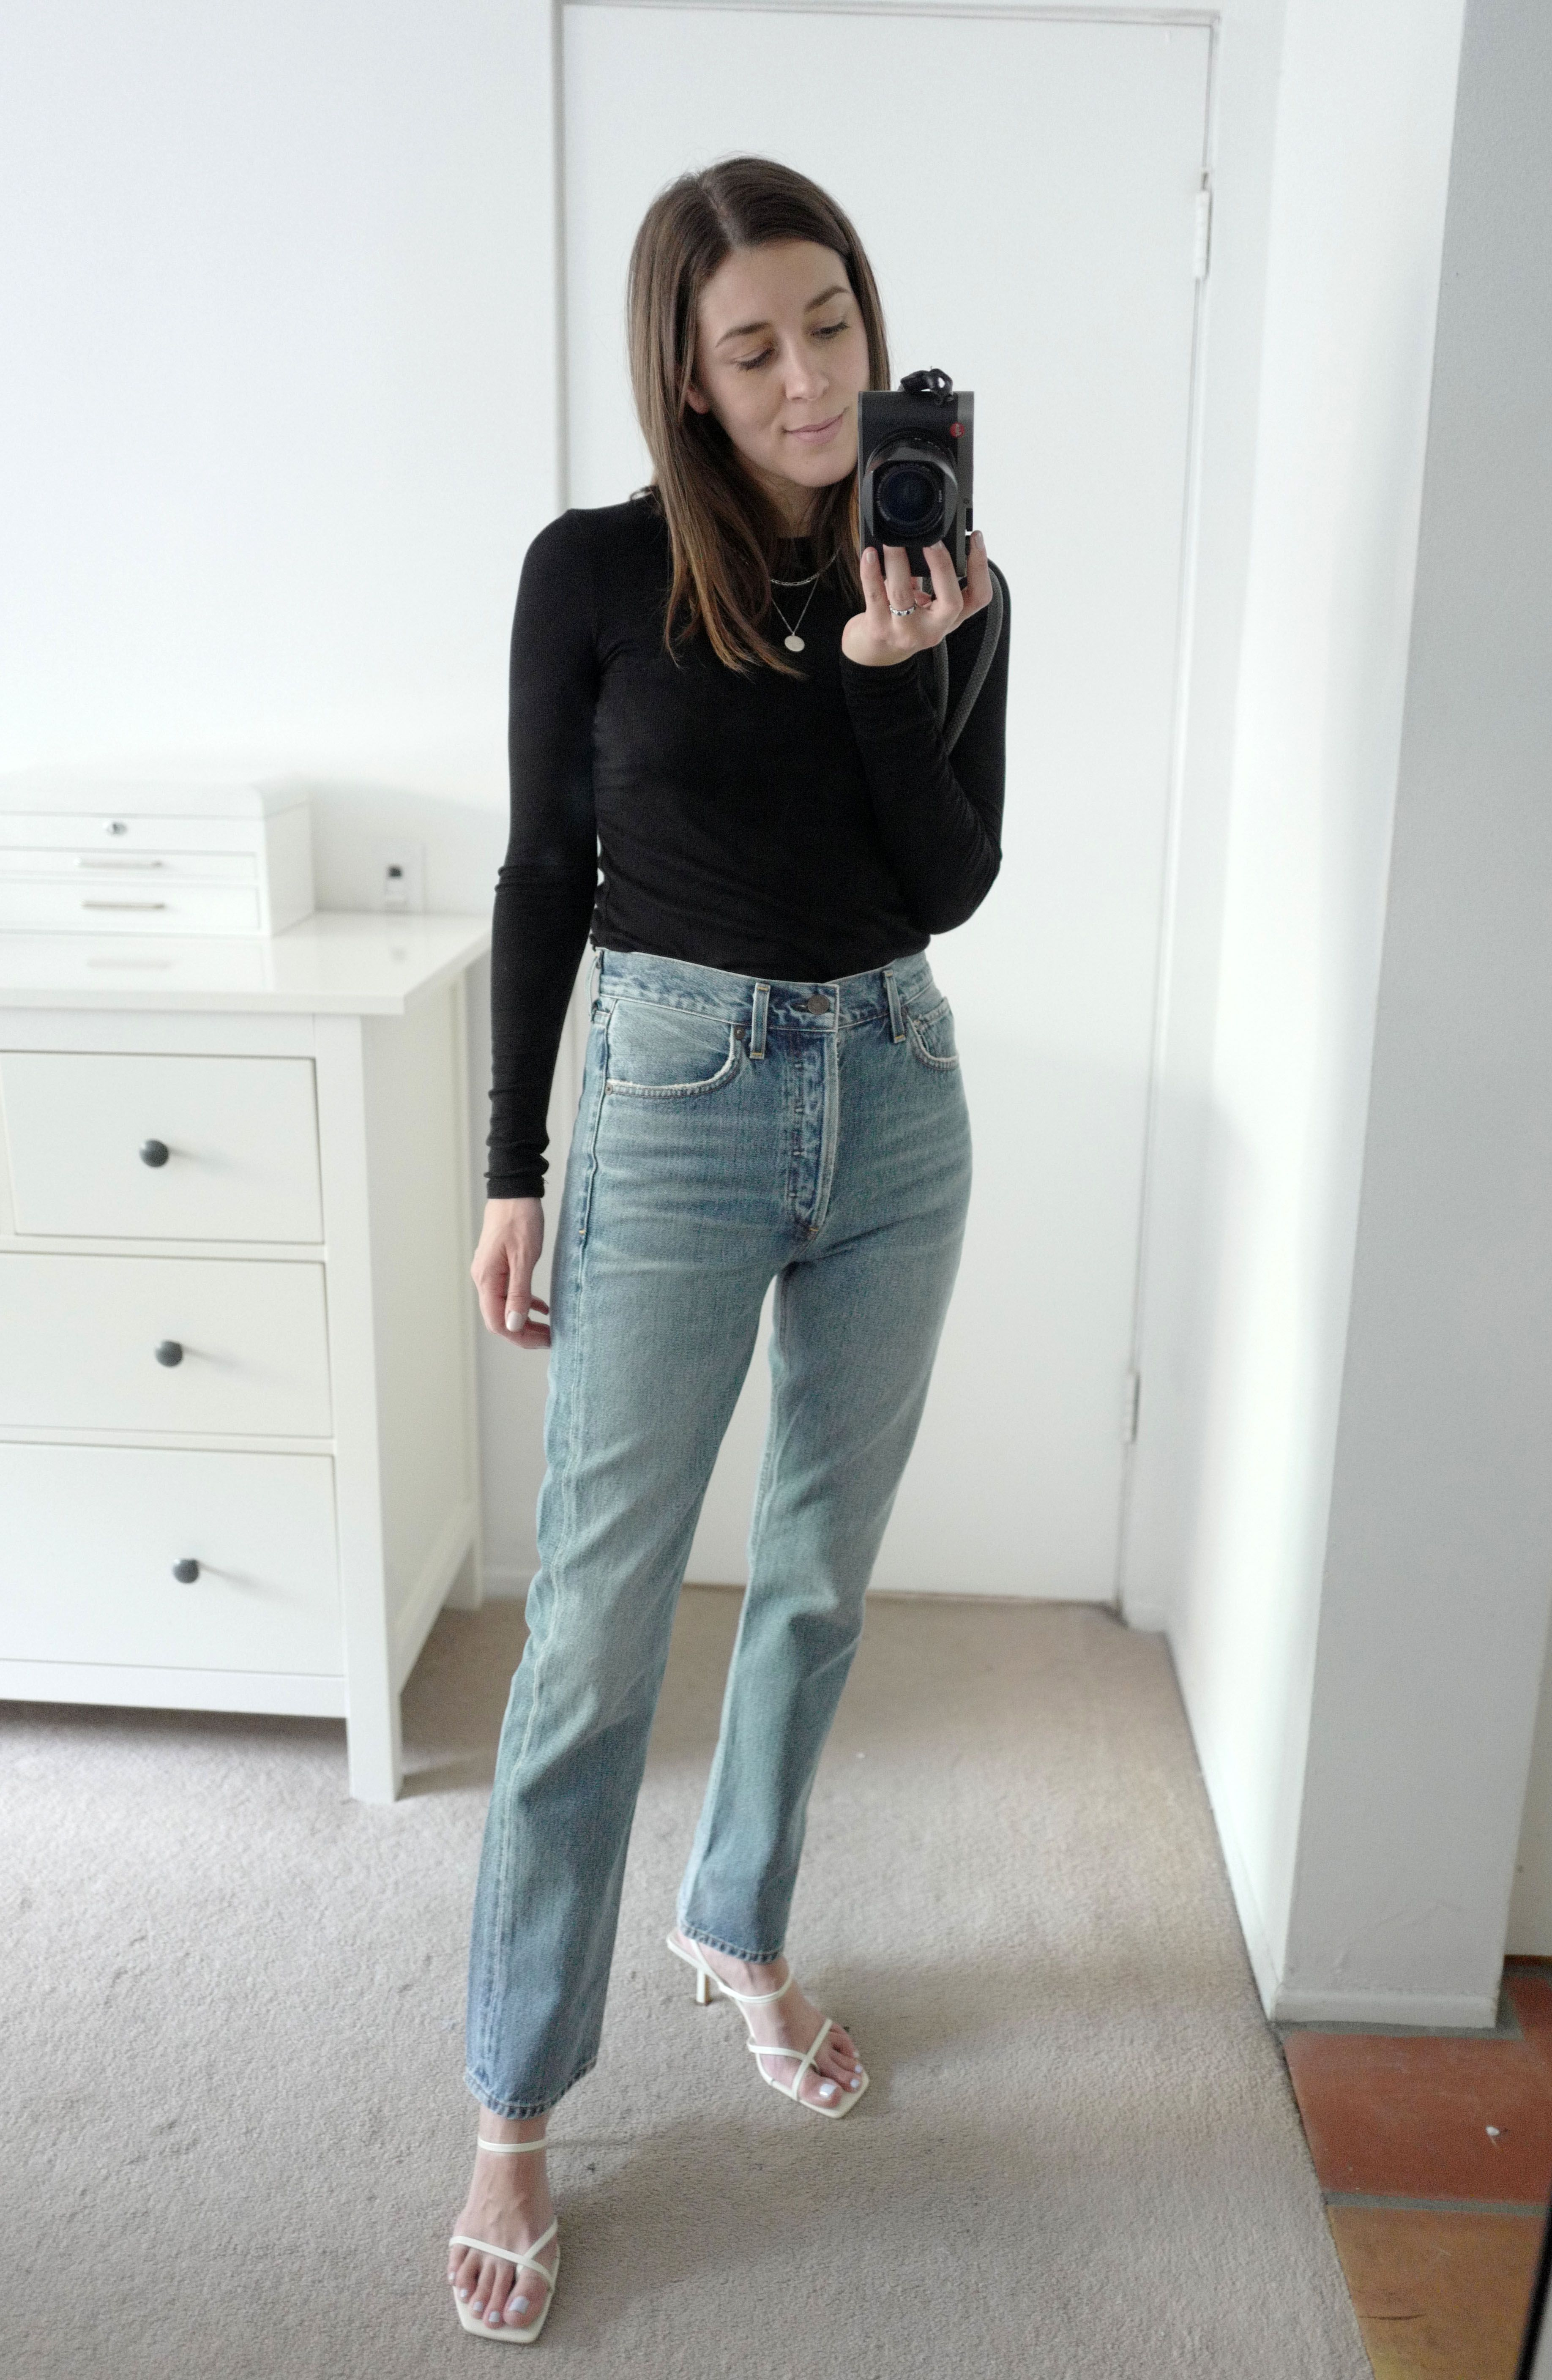 a296633a9d3dc I Tried on 20 Pairs of Straight-Leg Jeans to Find the Best-Fitting |  WhoWhatWear.com | Bloglovin'